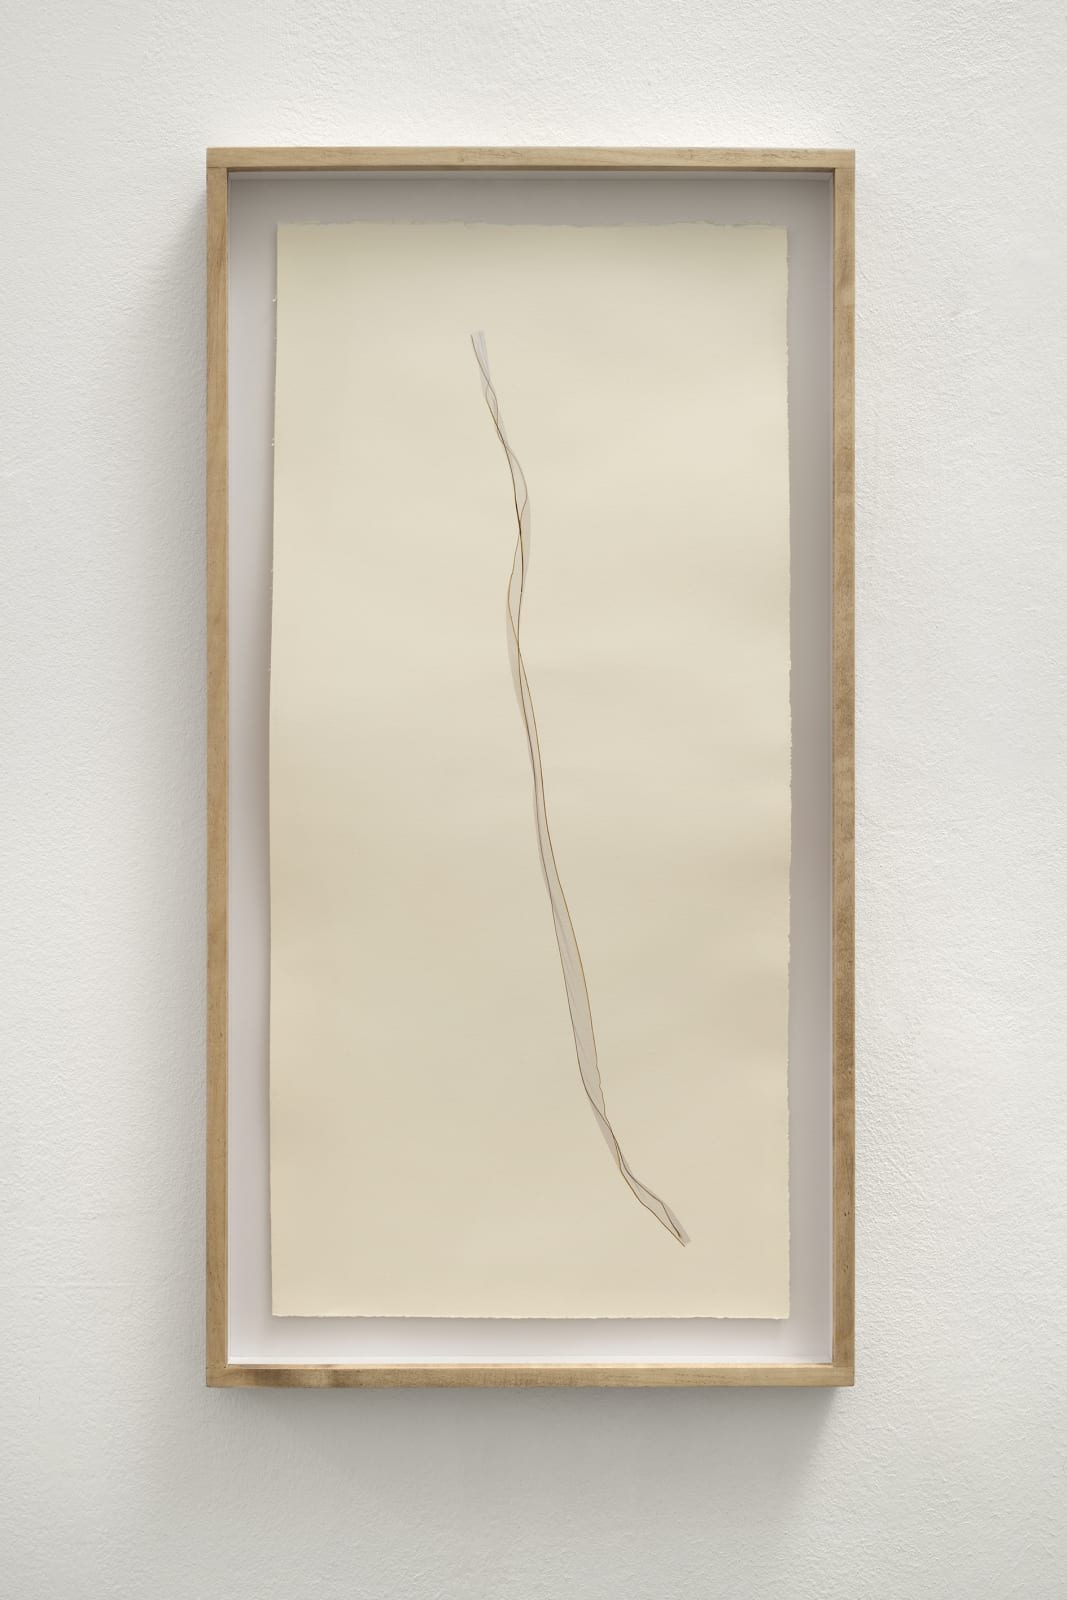 Beatrice Pediconi Untitled Small #12, 2020 Emulsion lift on paper cm 66x30, with frame and glass cm 73 x 38